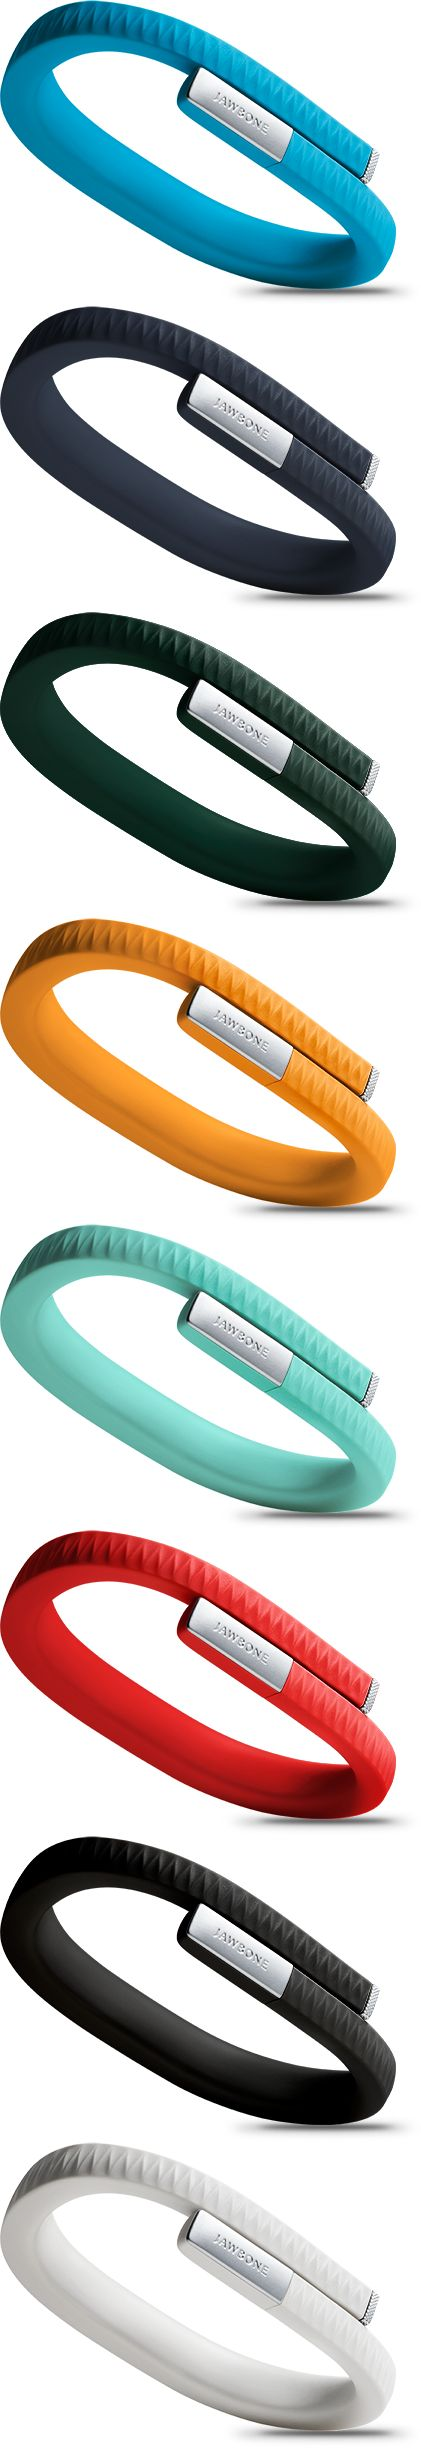 Up band jawbone, for the exercise fanatics. I saw these at the apple store the other day! WANT